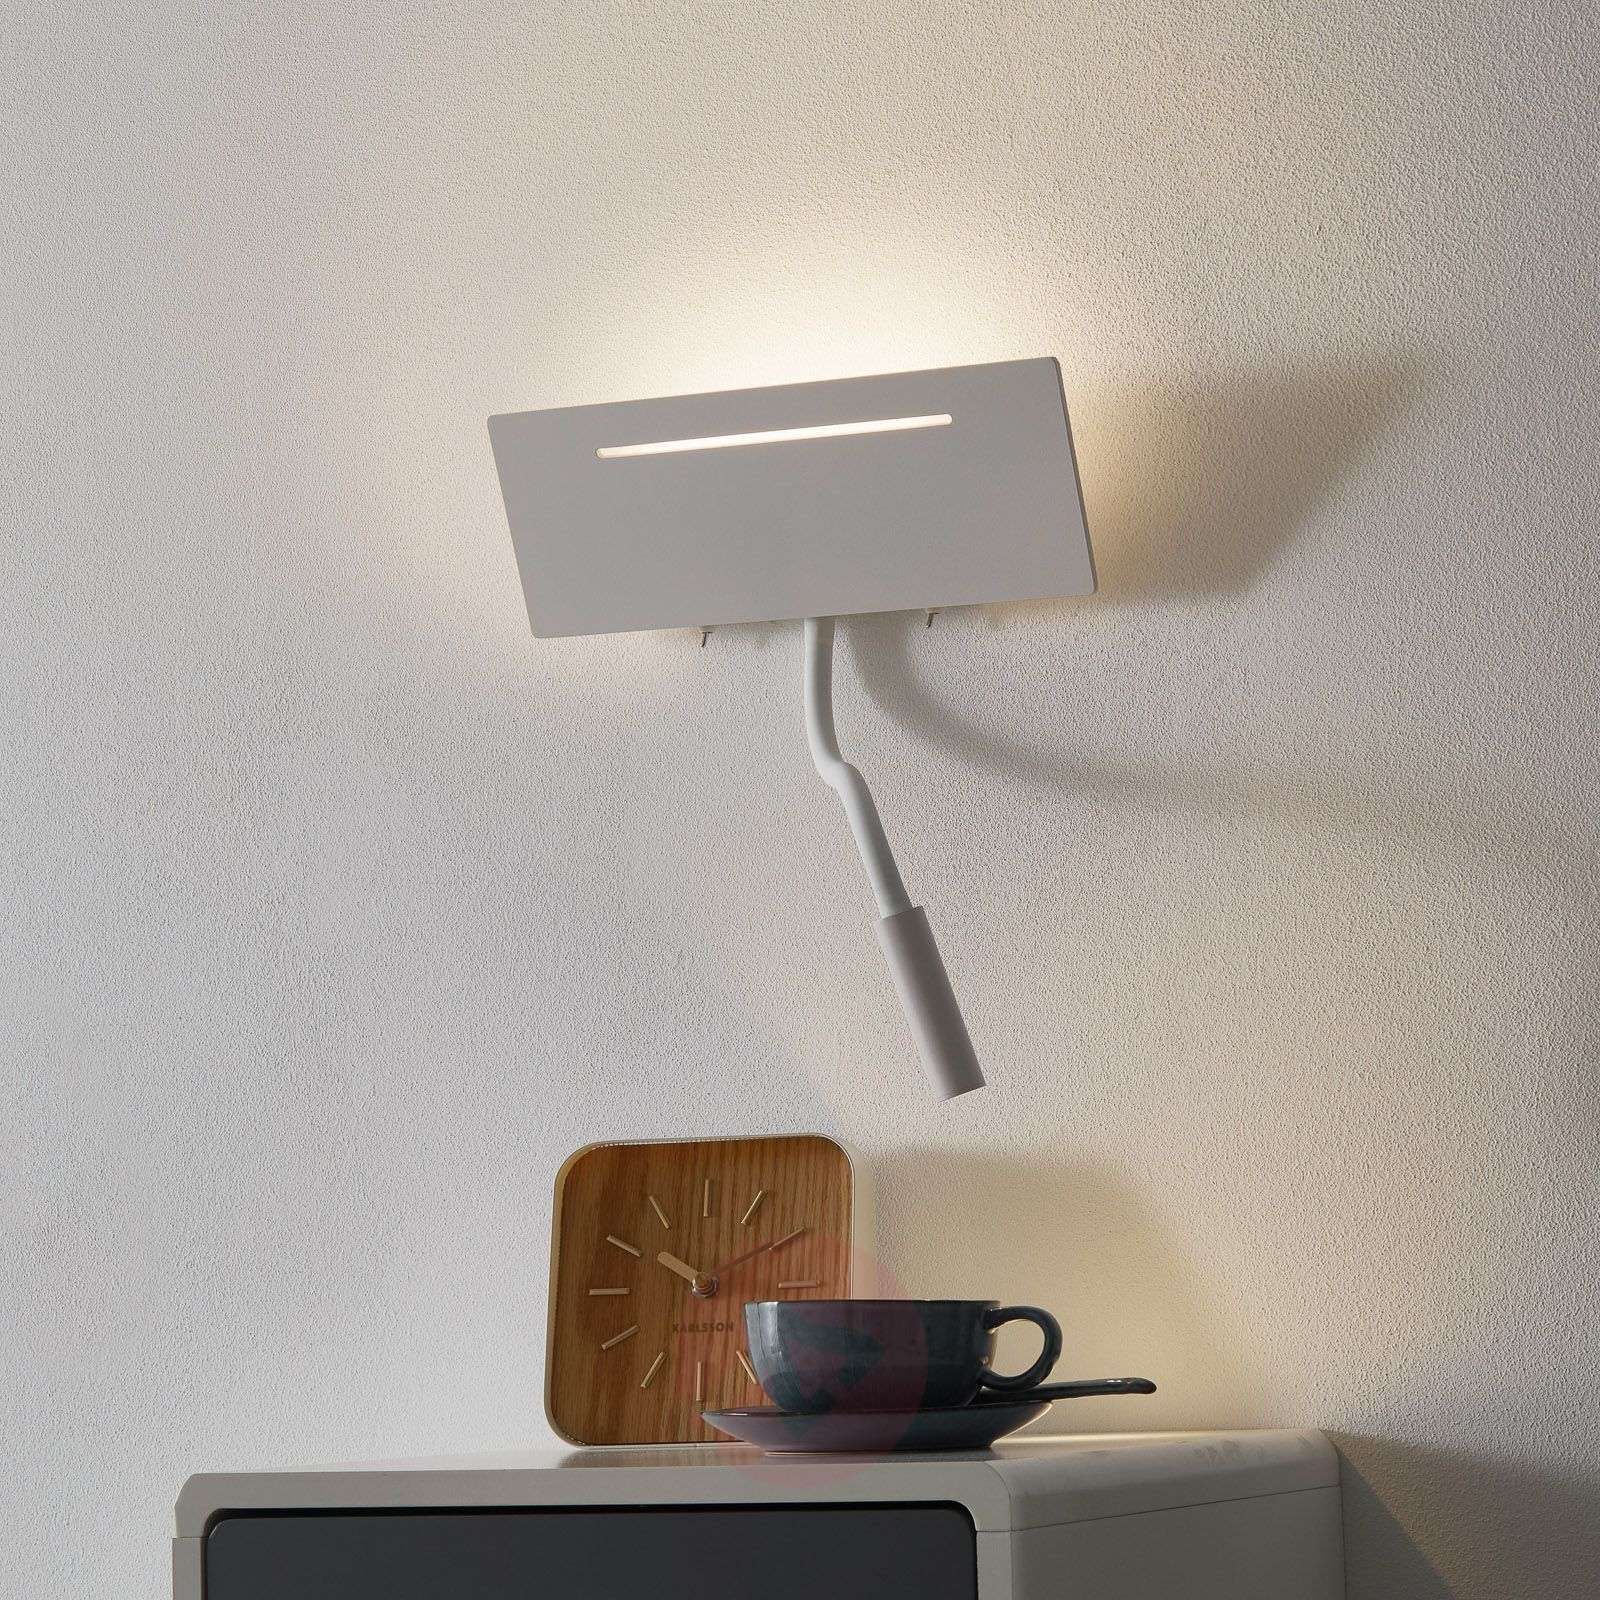 Ariel white LED wall lamp with reading light-1050147-01